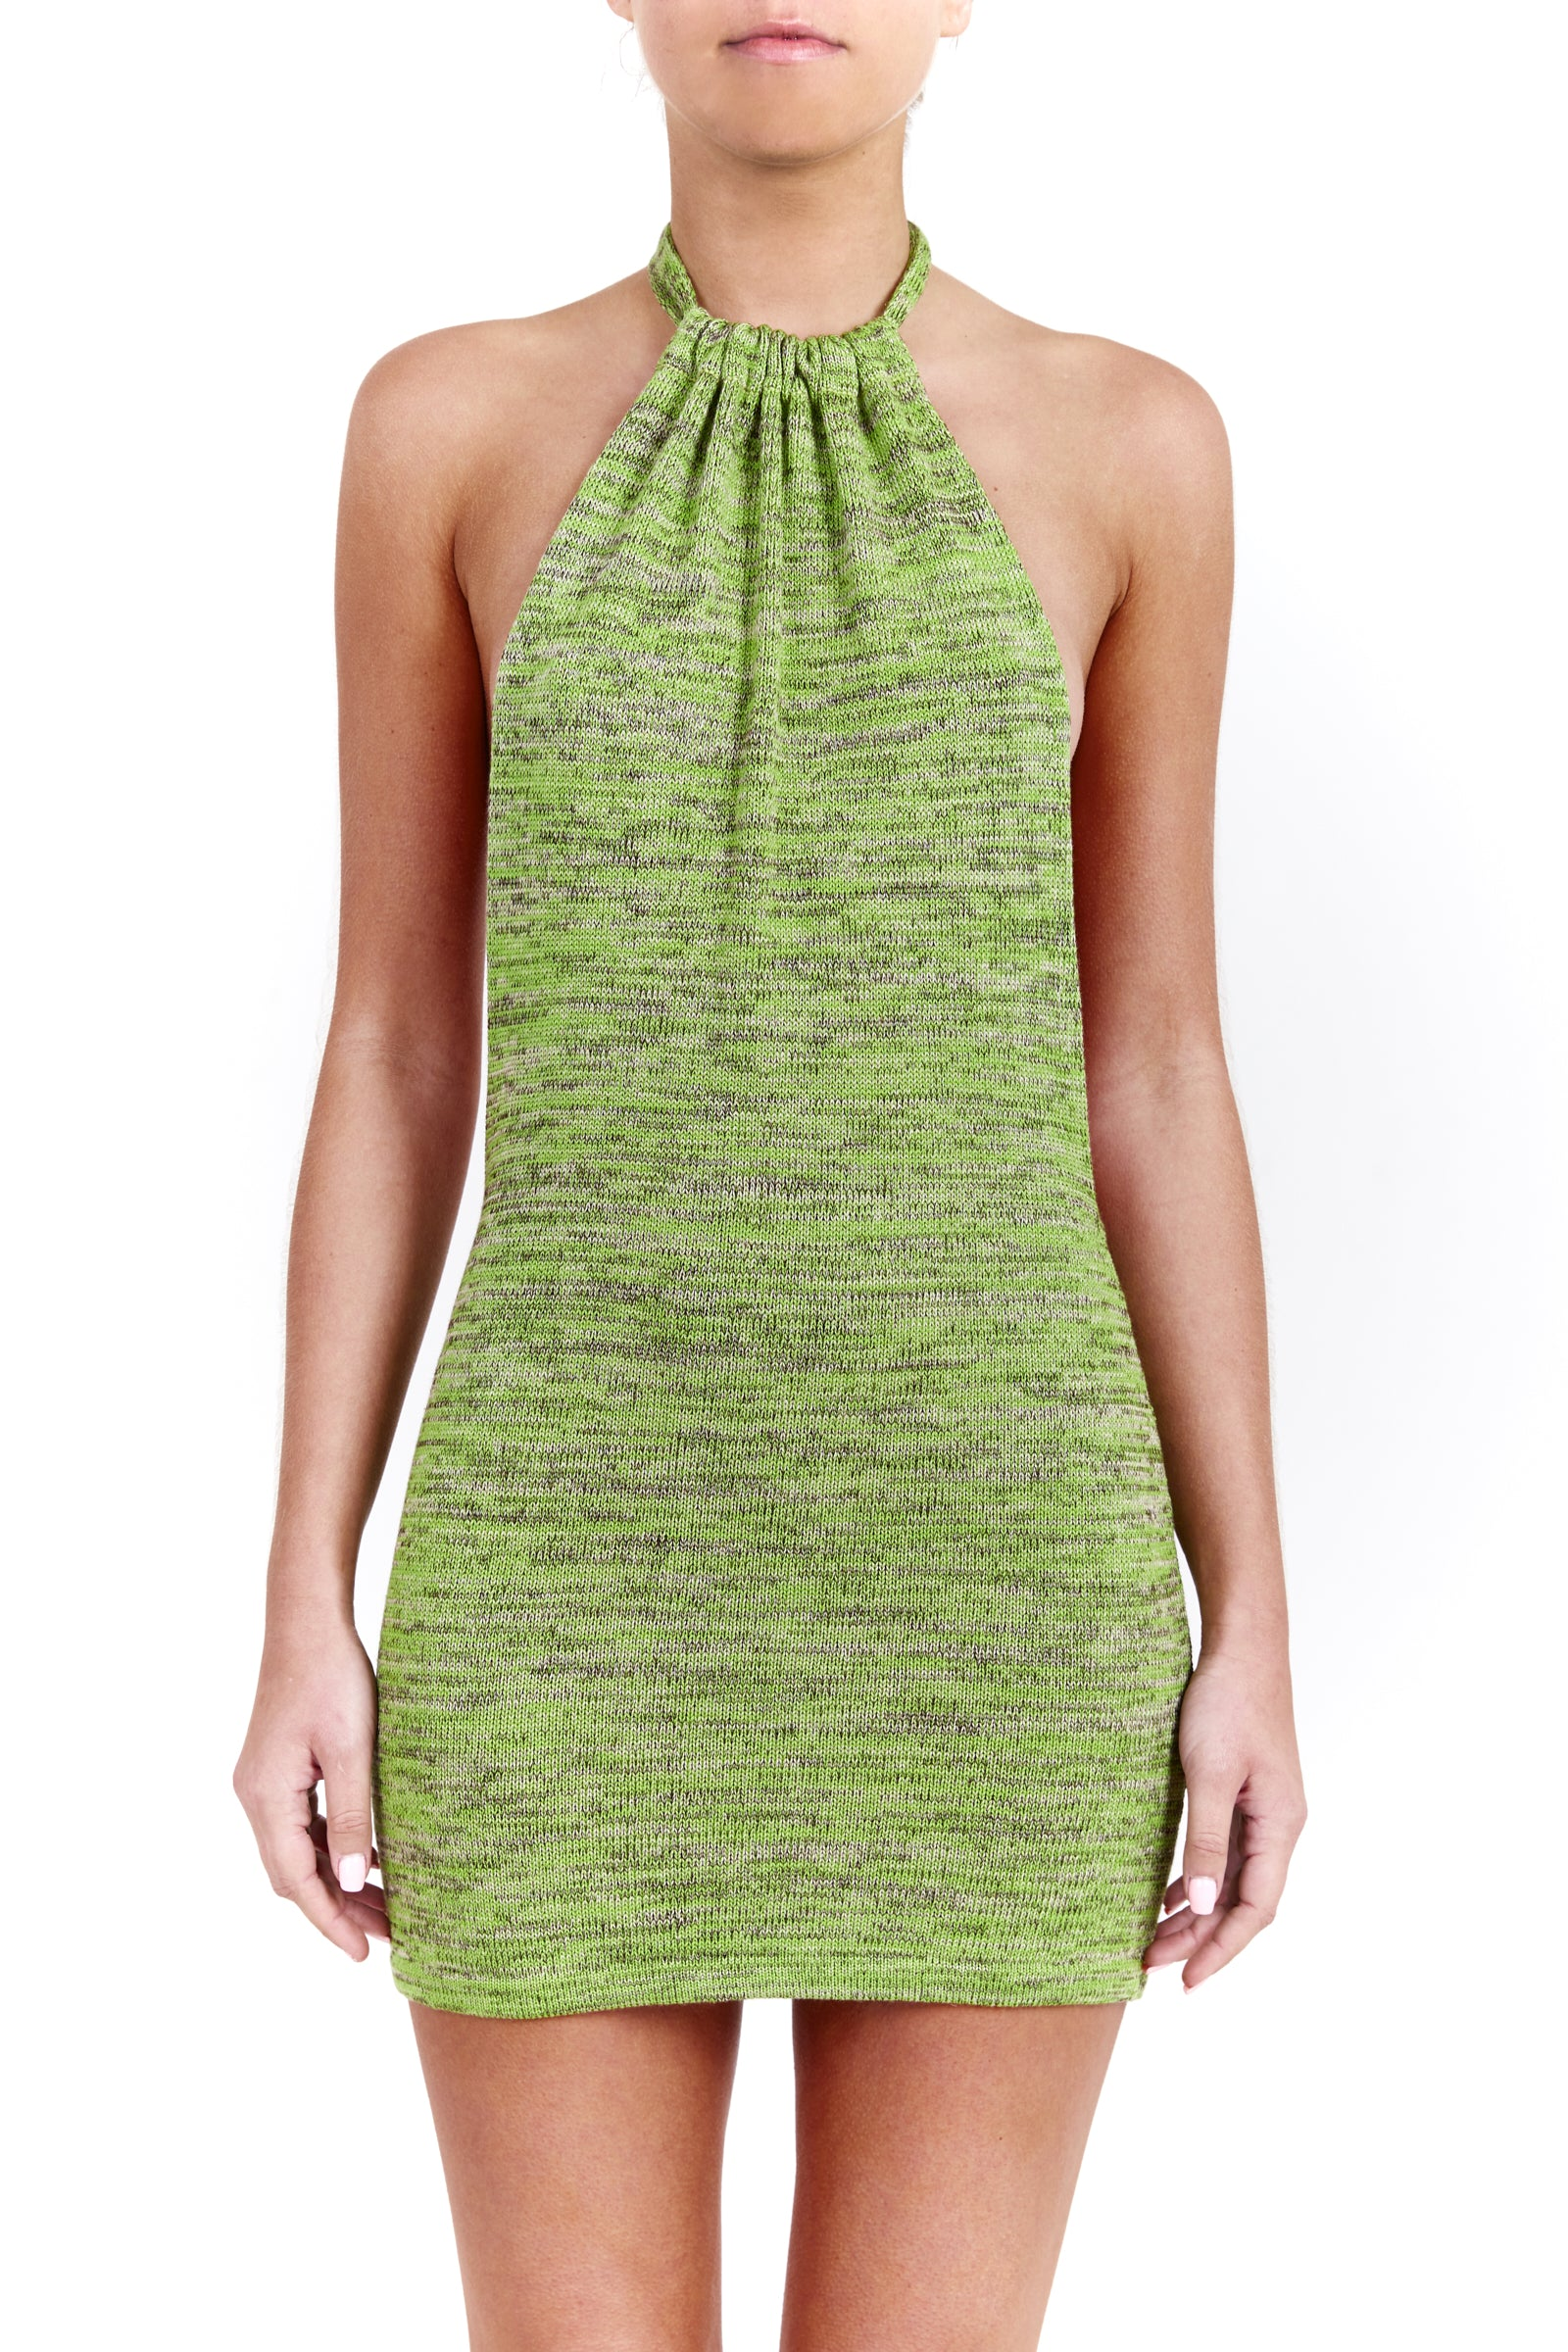 BOUNTY dress - moss green